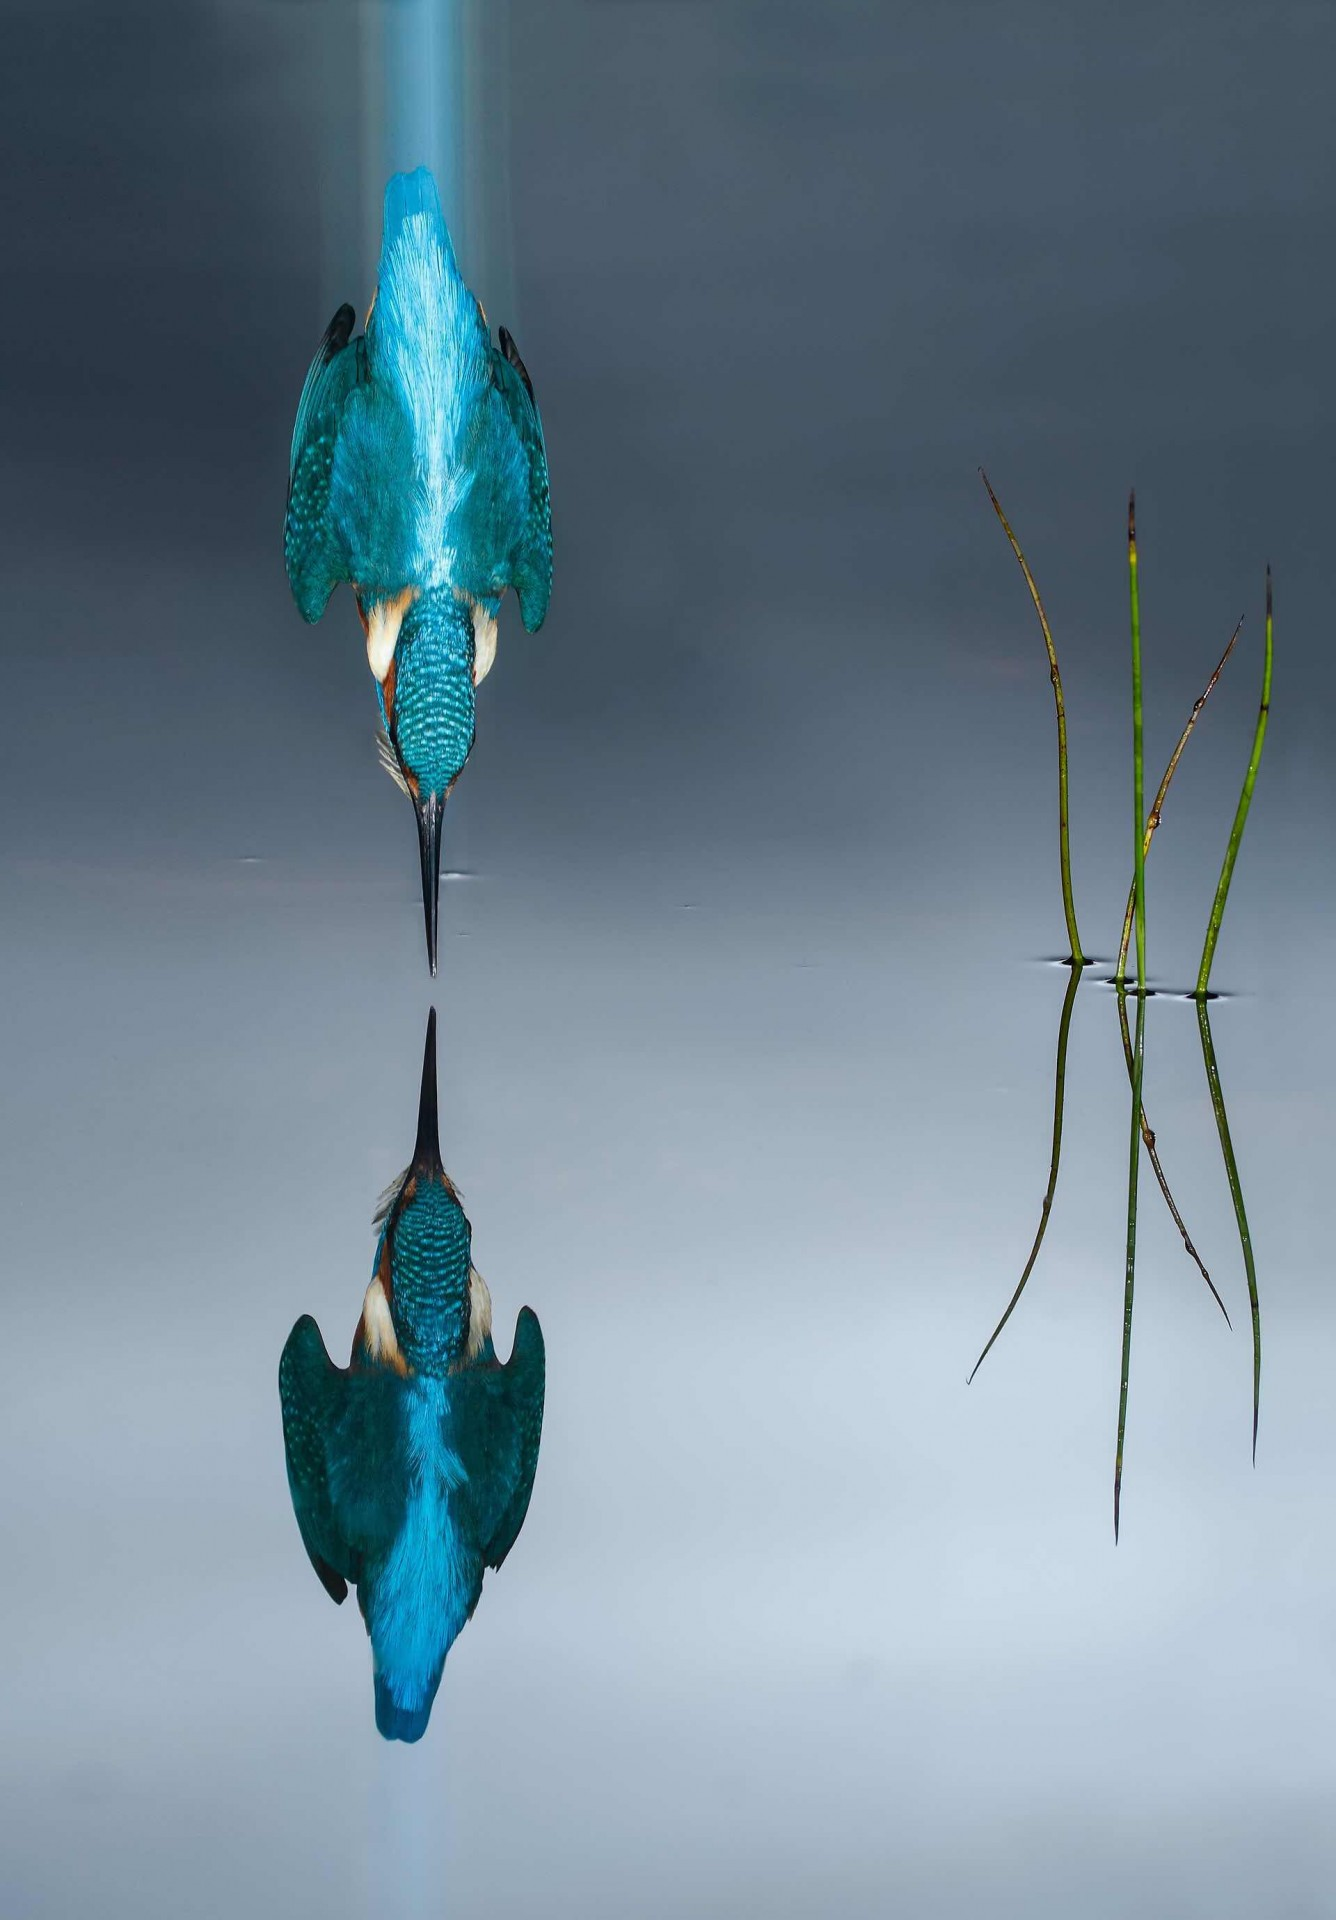 Kingfisher diving, SpainPhoto: Mario Cea Sanchez